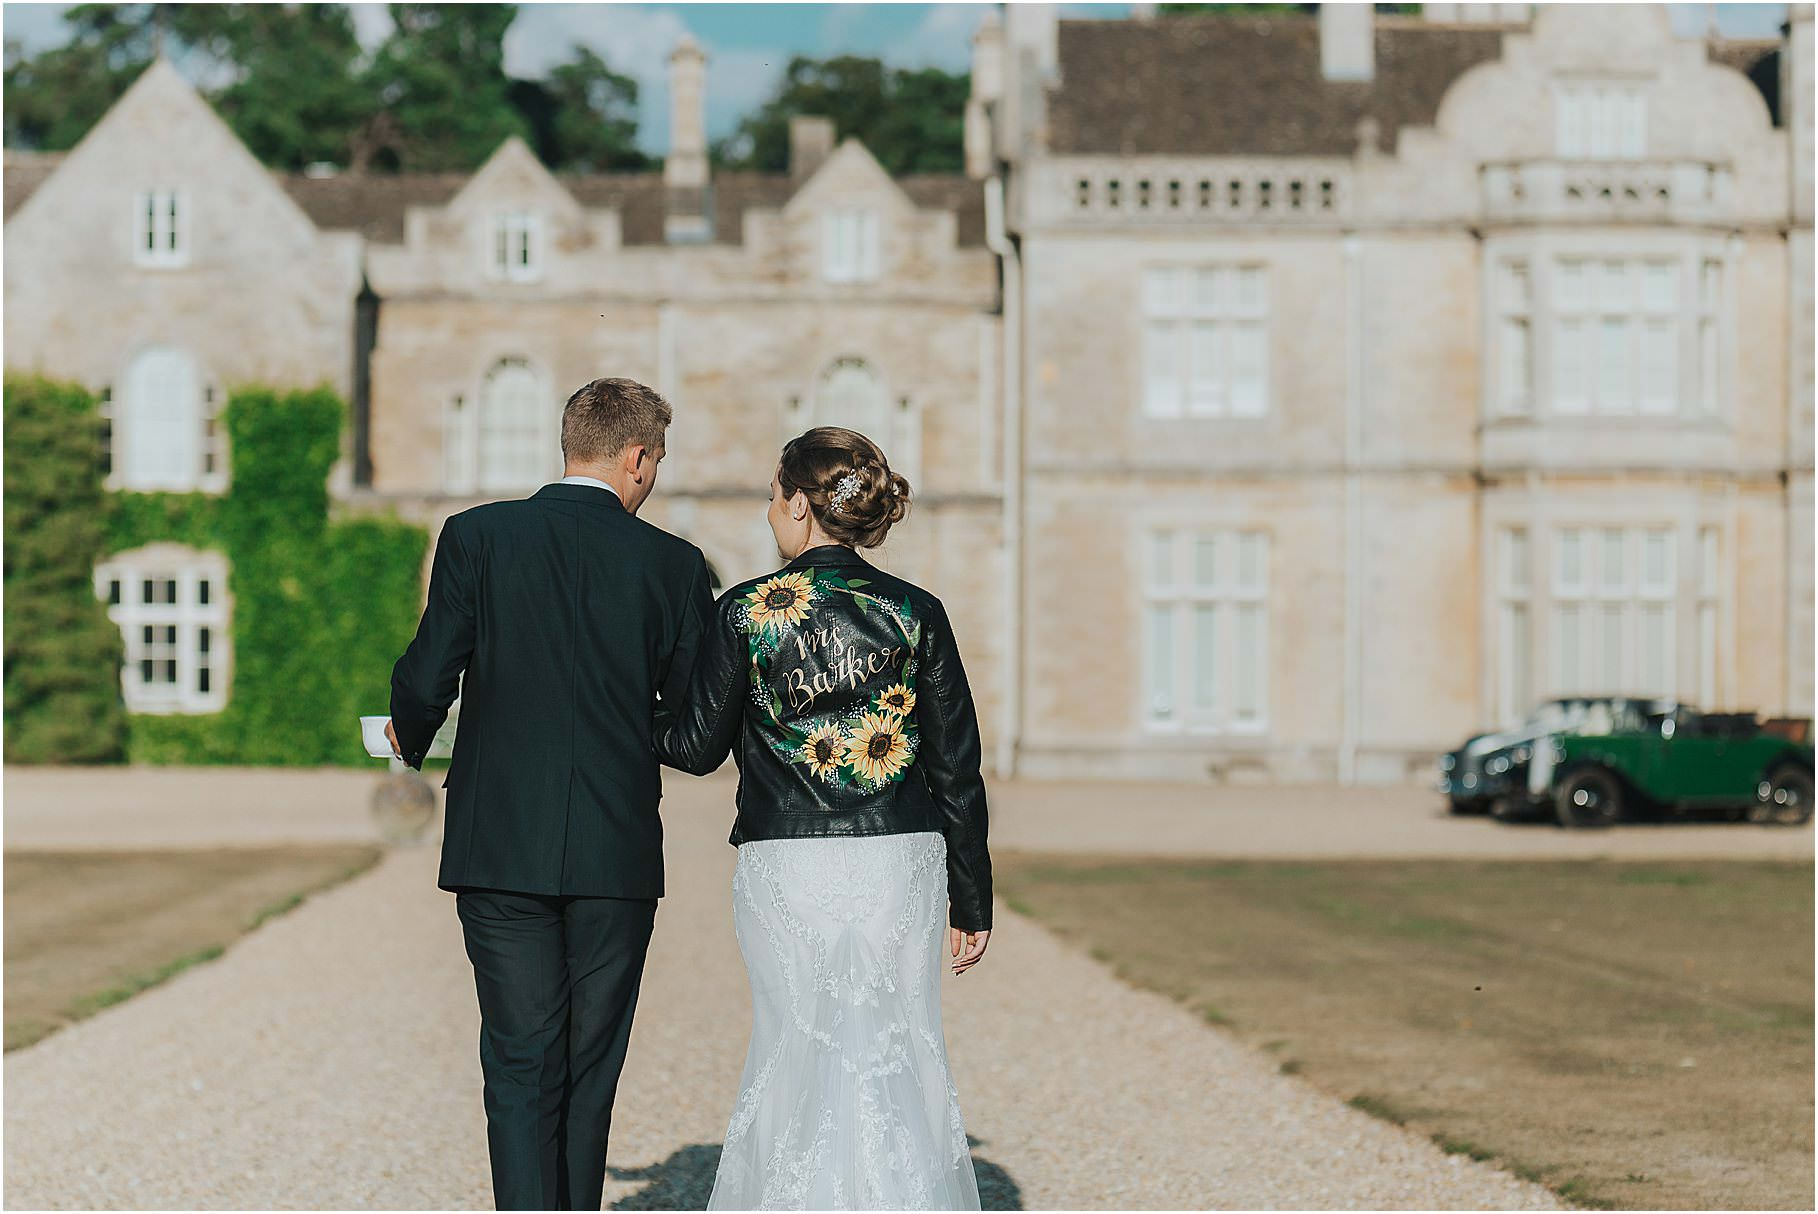 Rutland Weddings Exton Hall Exton Oakham Rutland Water Photographer 1094 - Mr and Mrs Barker // RUTLAND WEDDING